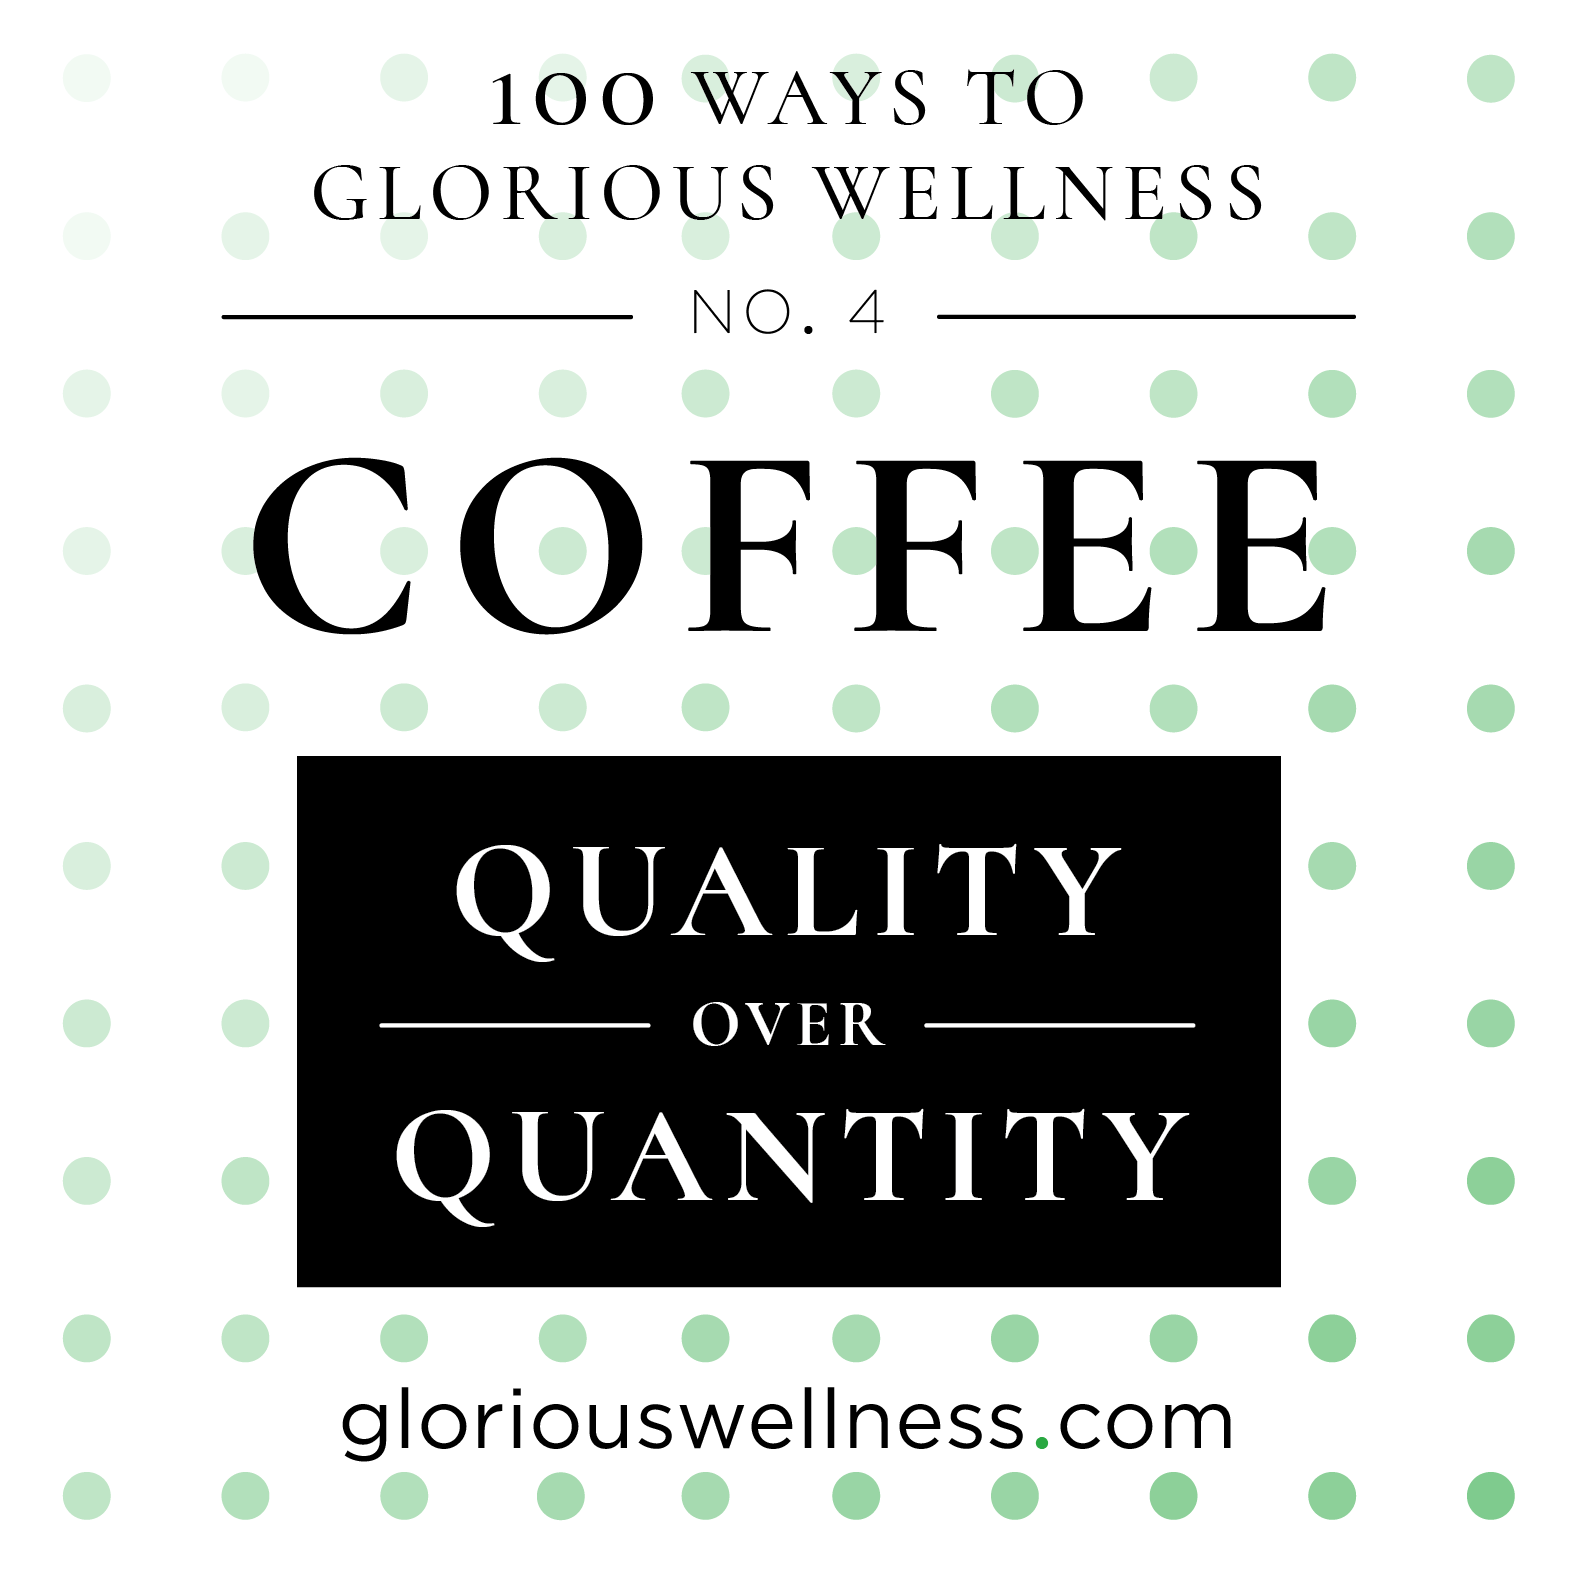 No. 4 - Coffee: Quality Over Quantity